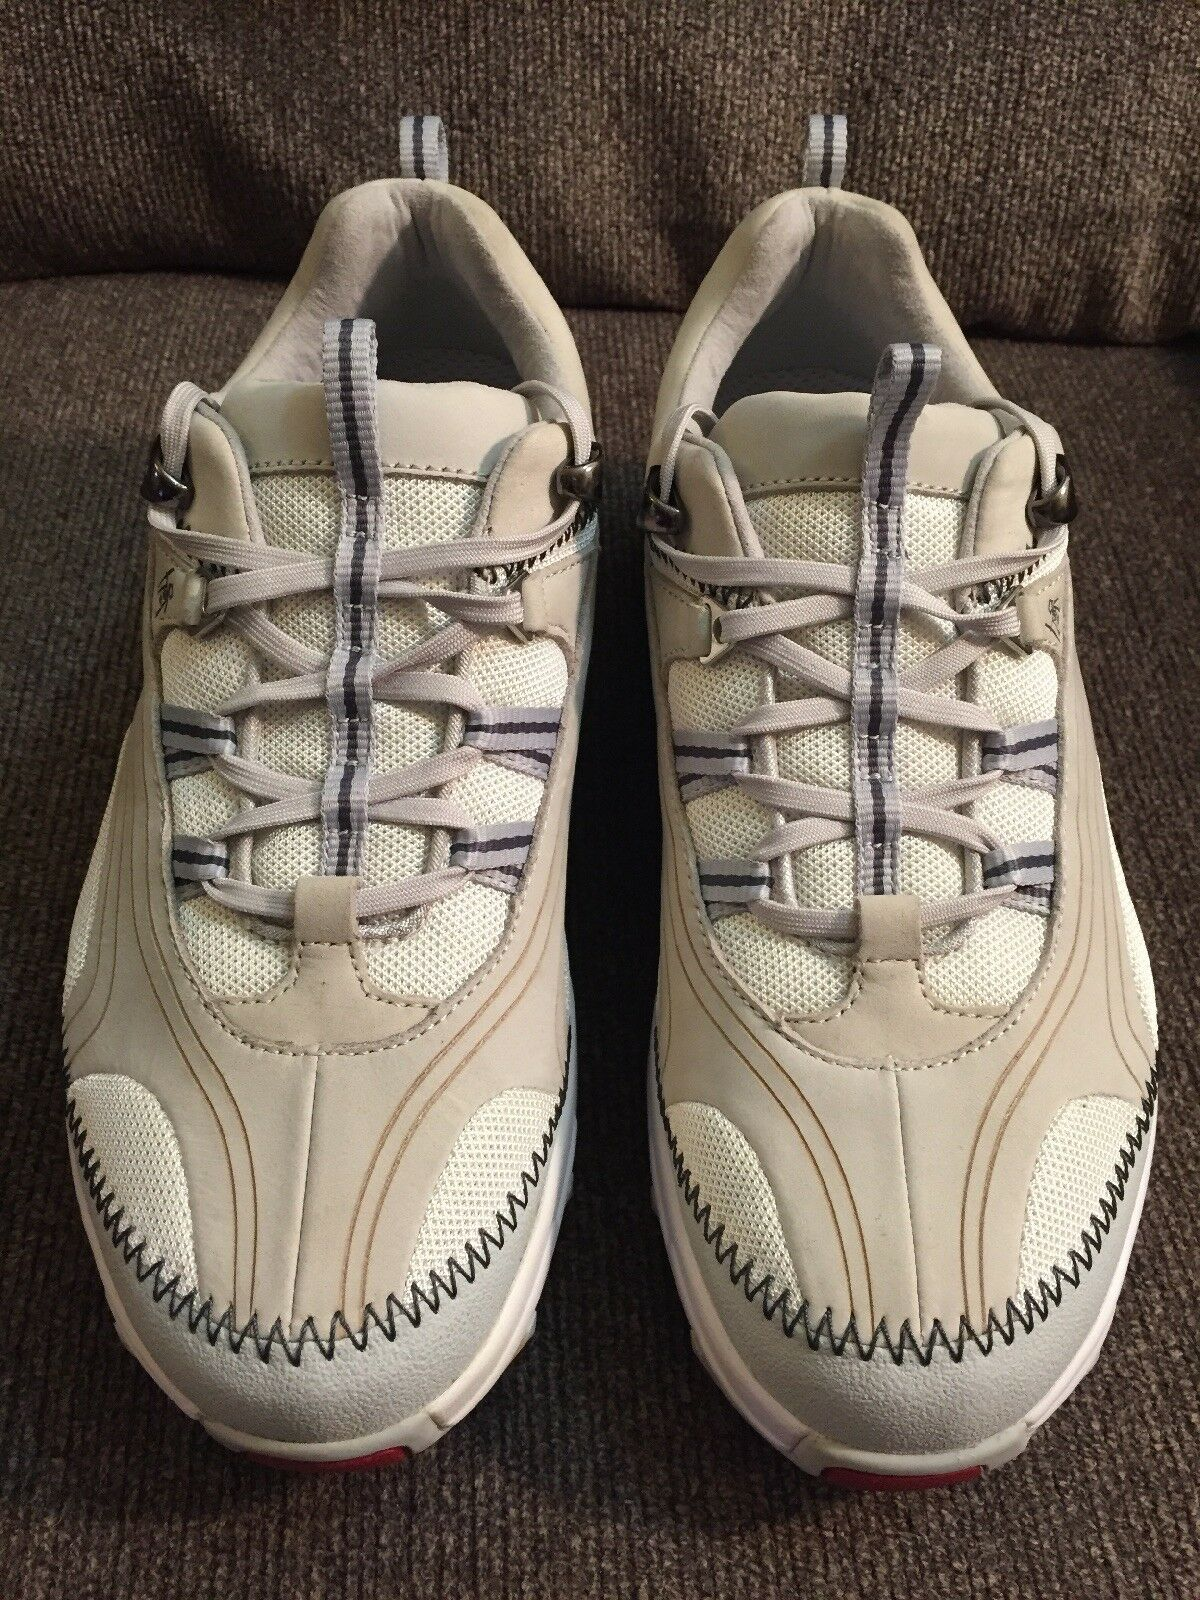 MBT Chapa w White, Cream Leather Mesh Women's Sz 9 Walking Comfort Sneakers